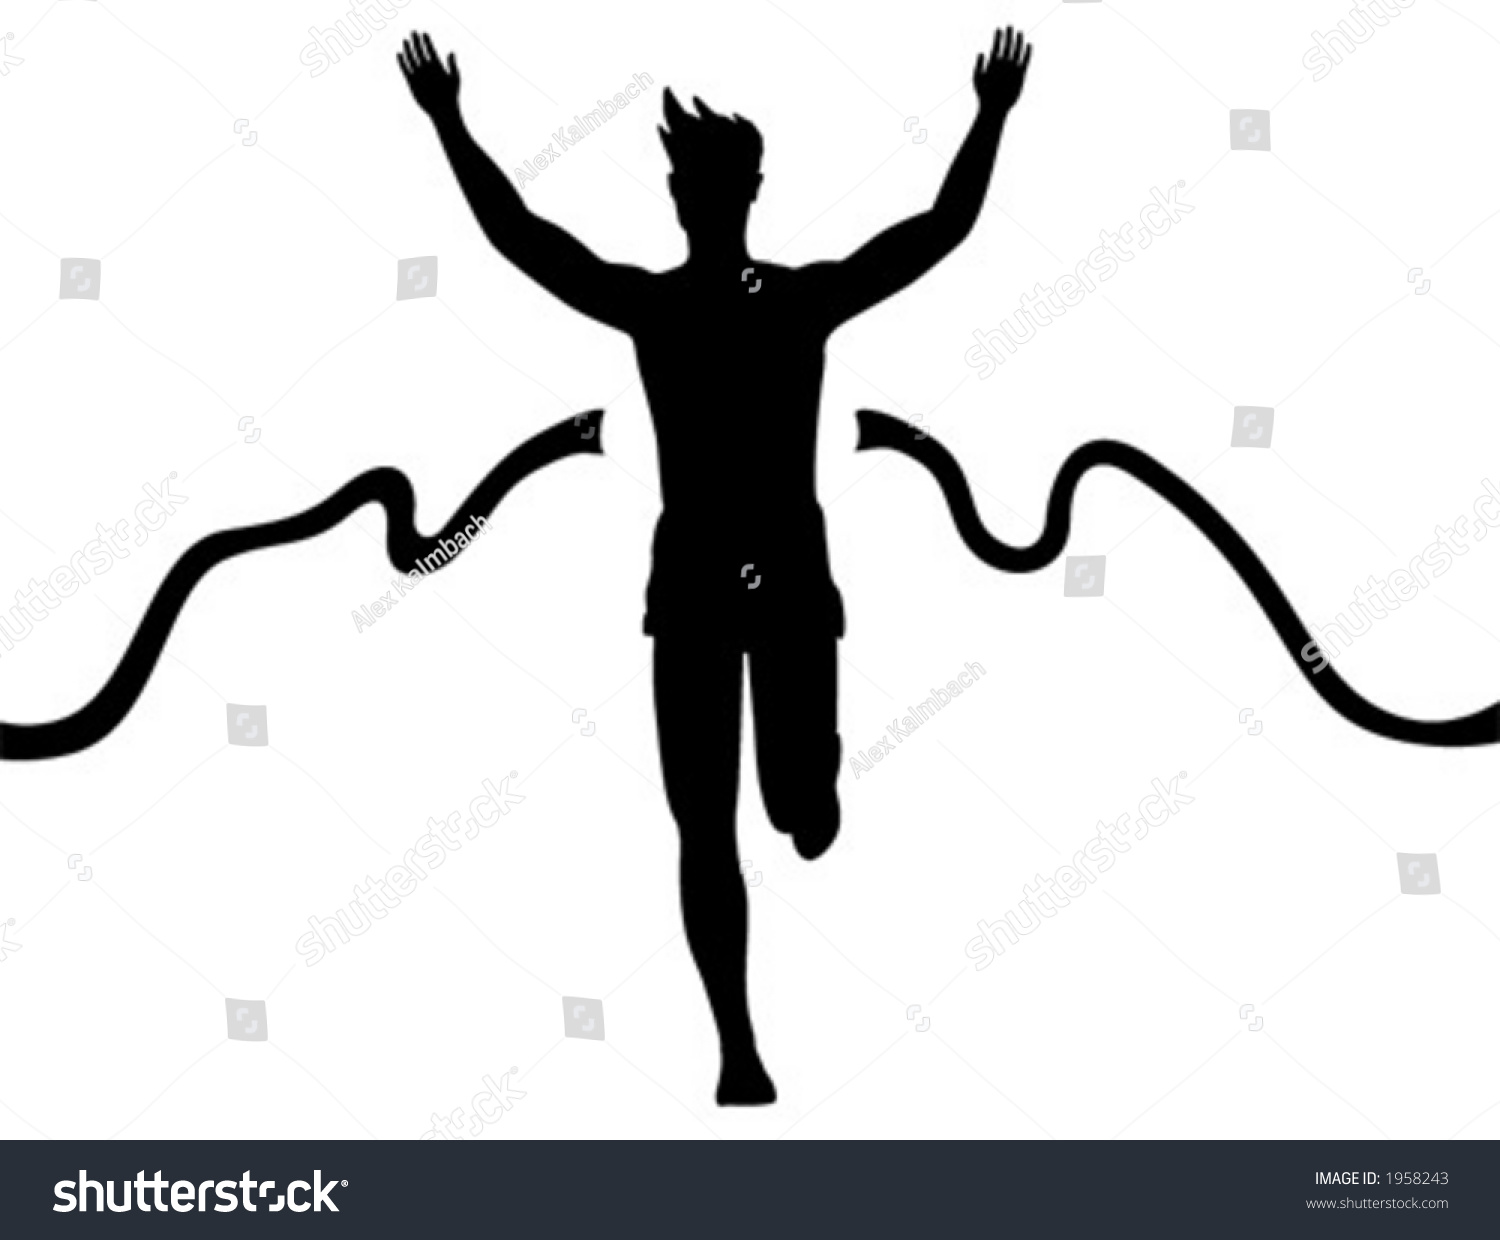 Silhouette Of A Man Running Across The Finish Line Stock Vector ...